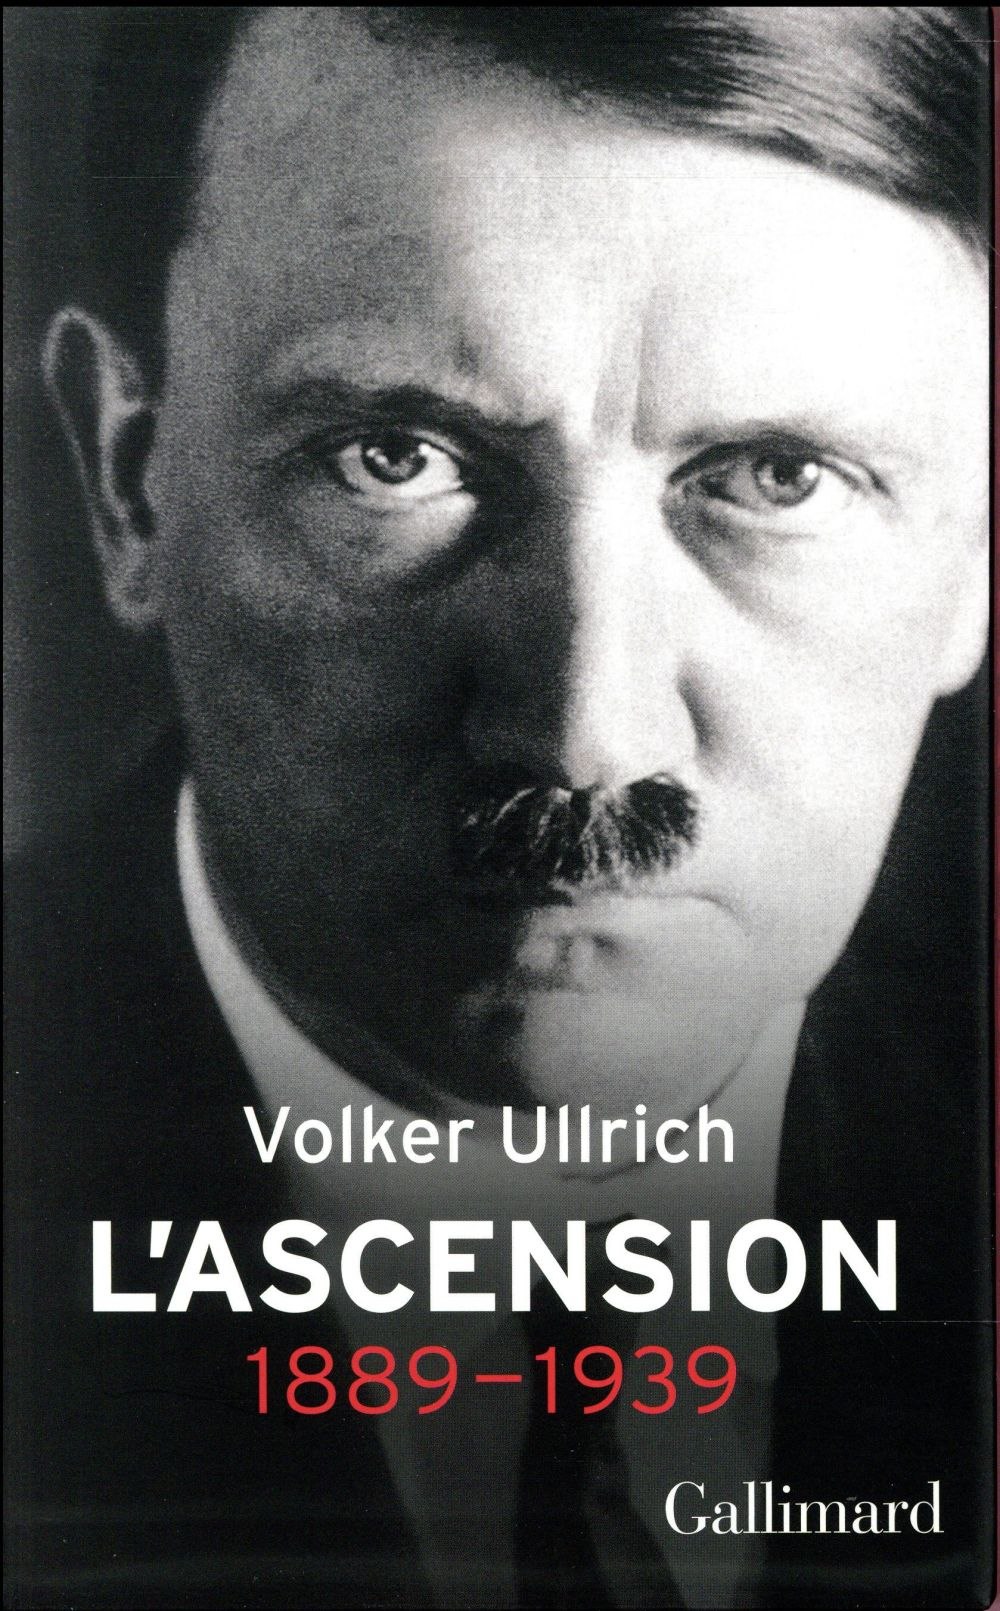 ADOLF HITLER - UNE BIOGRAPHIE. L'ASCENSION : 1889-1939